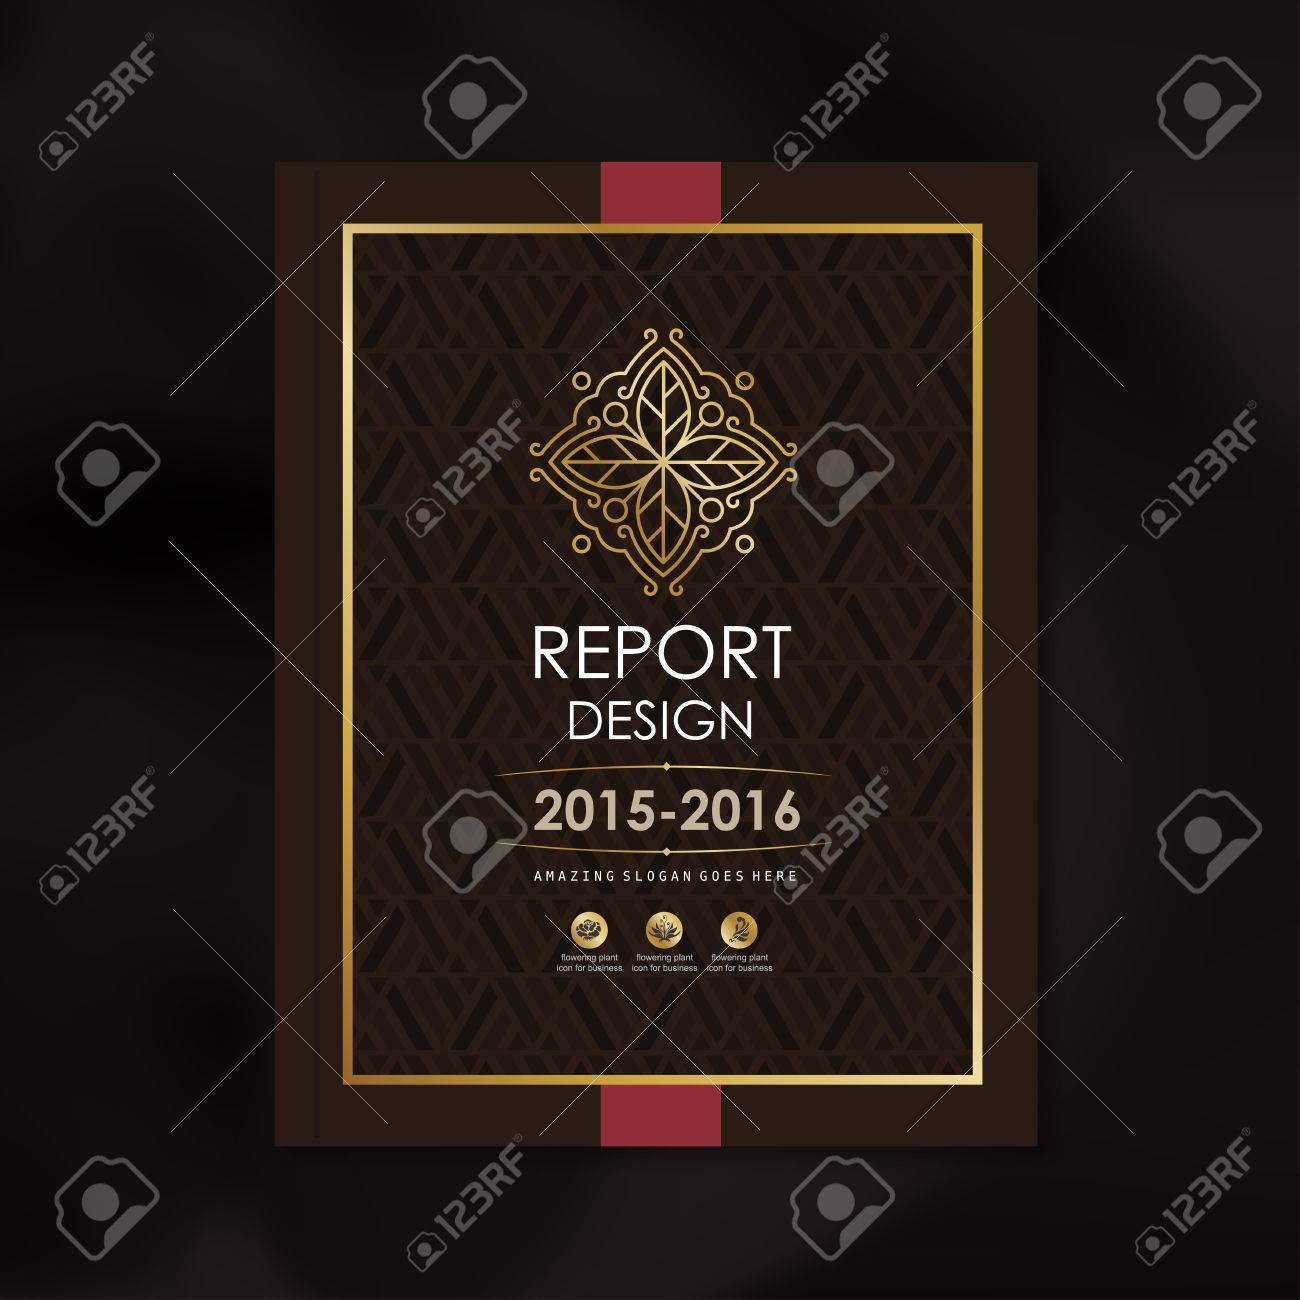 Modern Vector design template with luxury golden shape pattern background design for corporate business annual report book cover brochure poster,vector illustration - 53687649